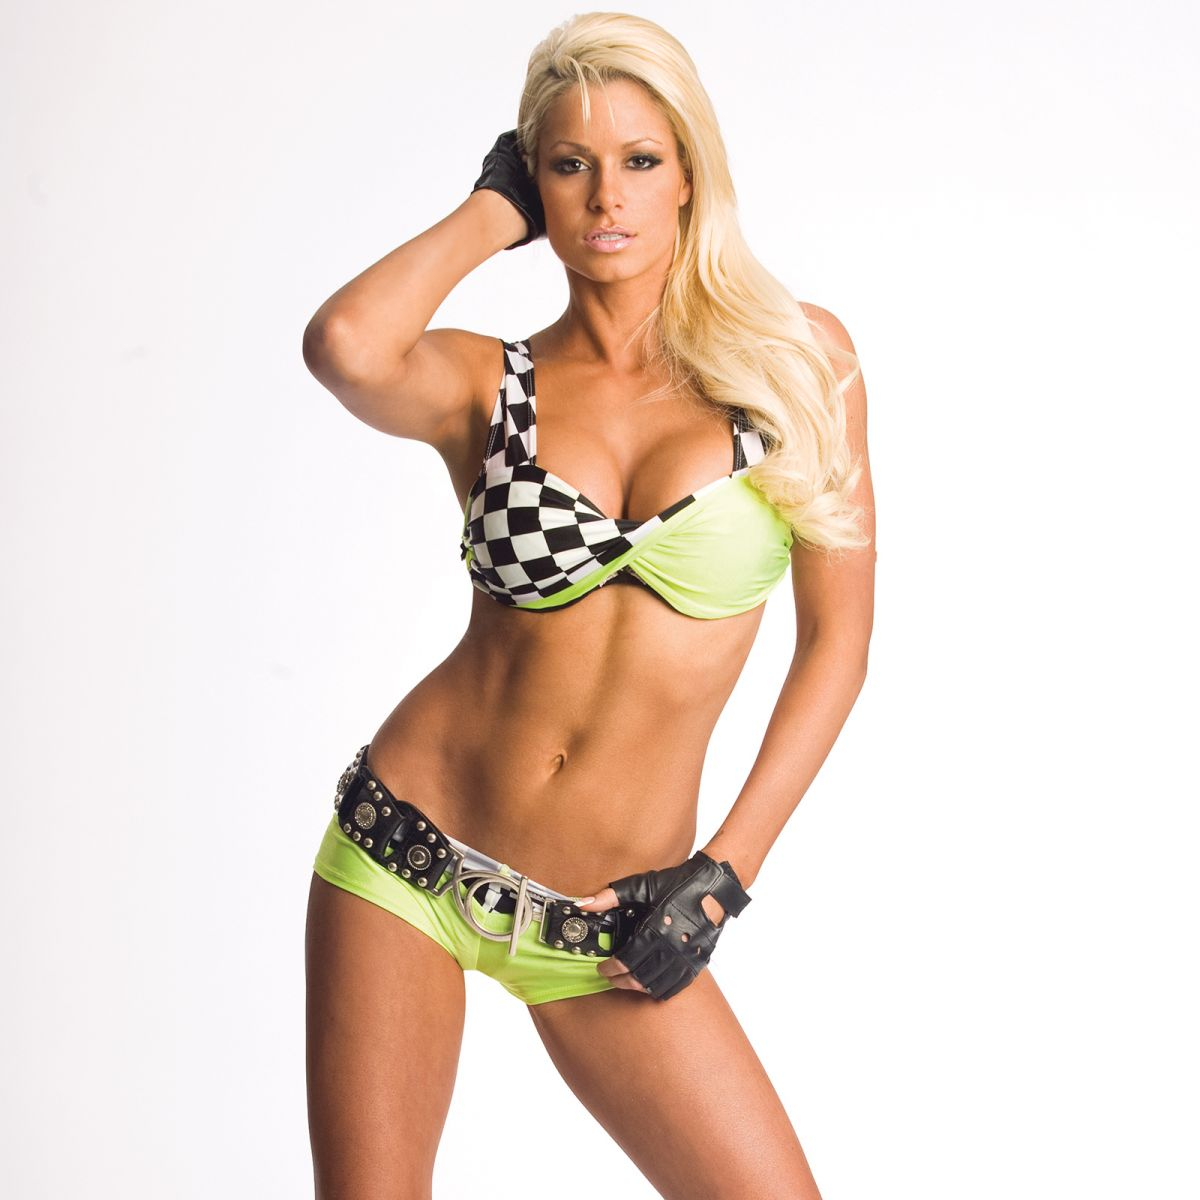 WWE – Maryse